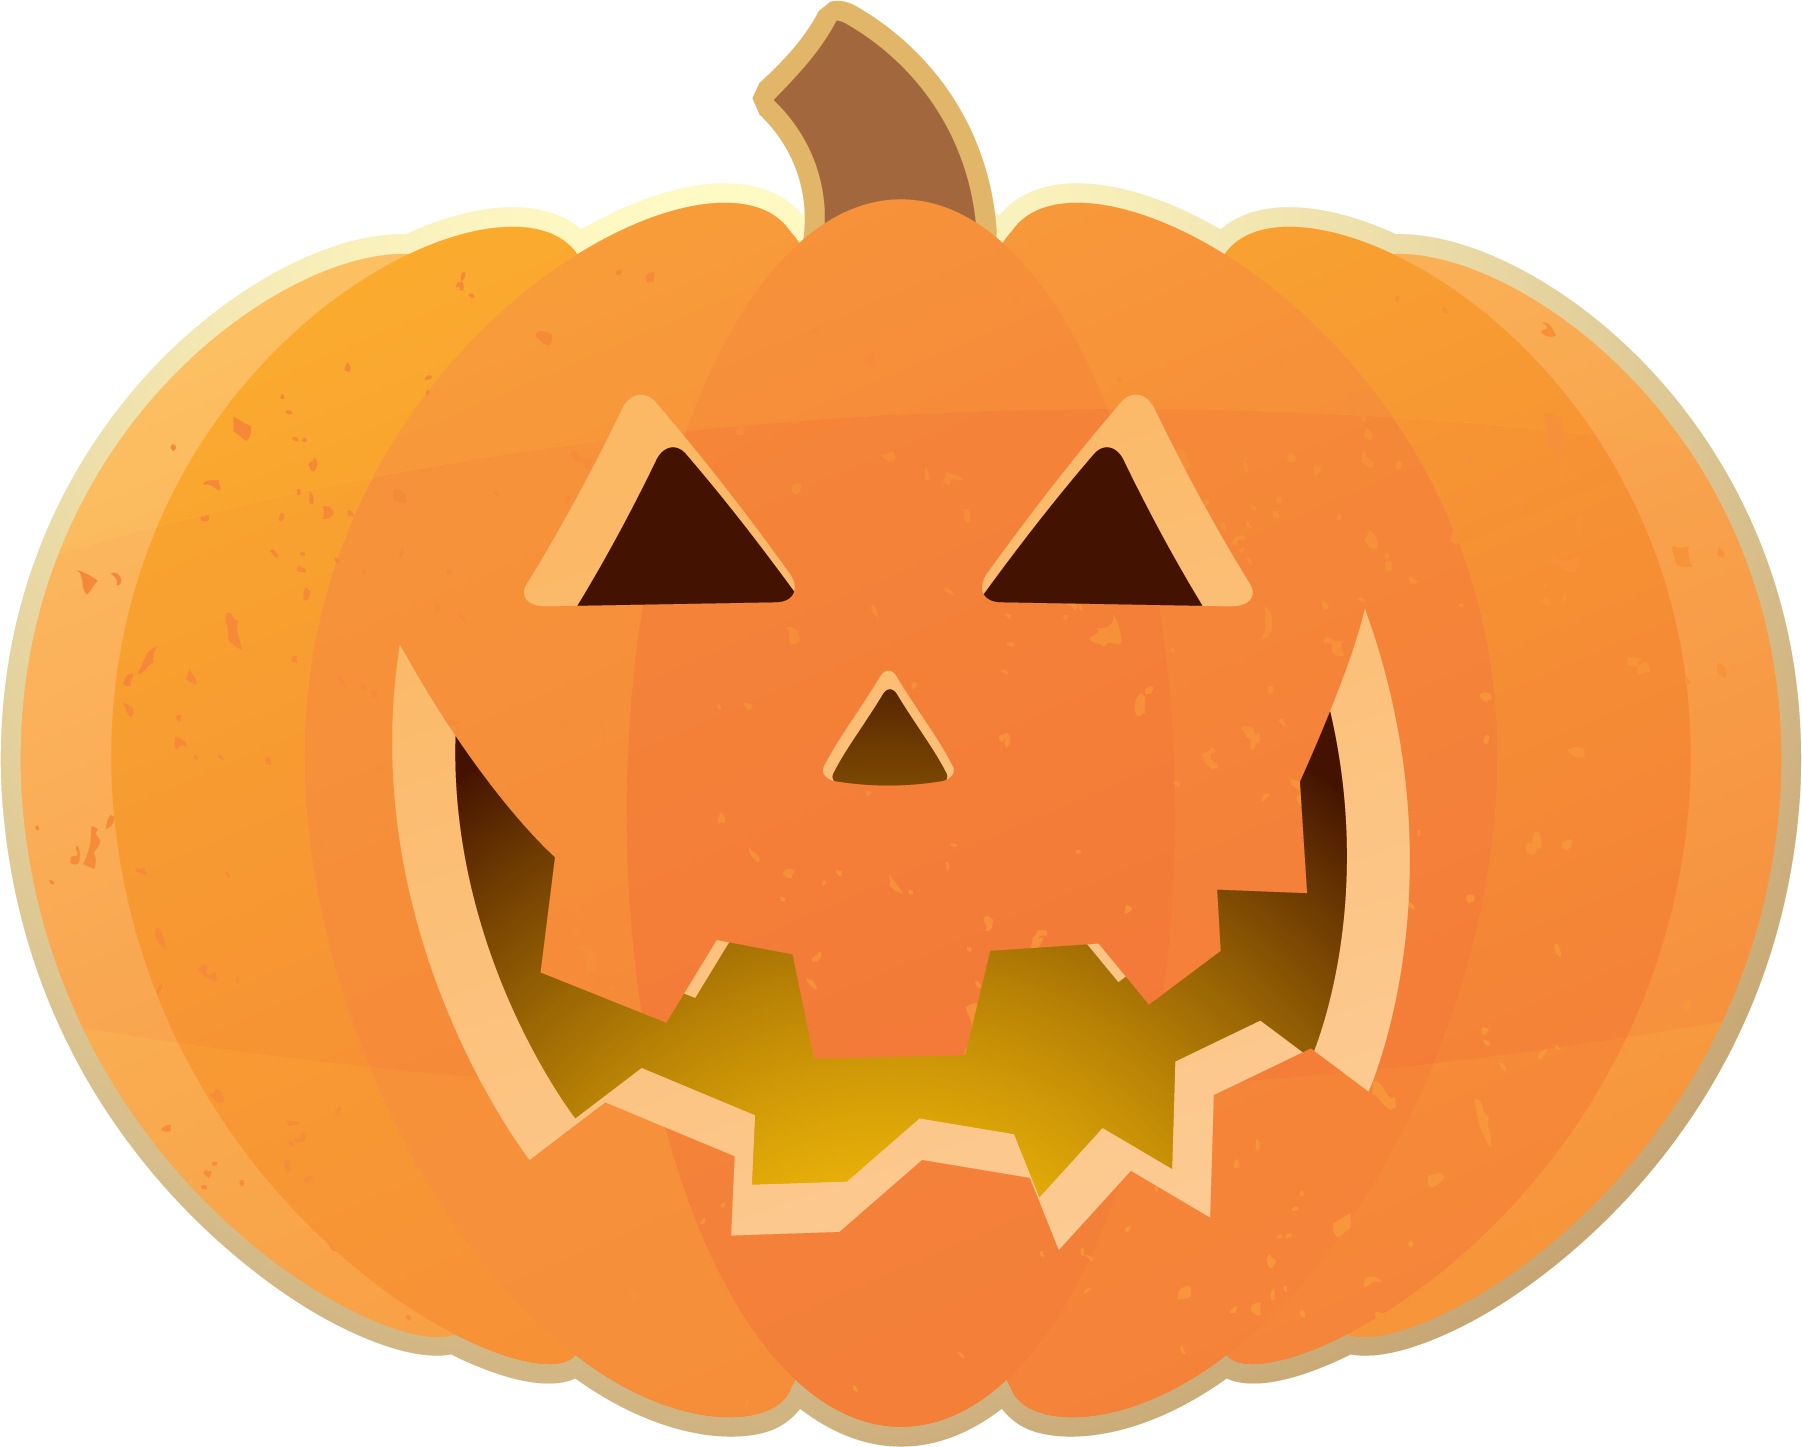 Pumpkin carving clipart free